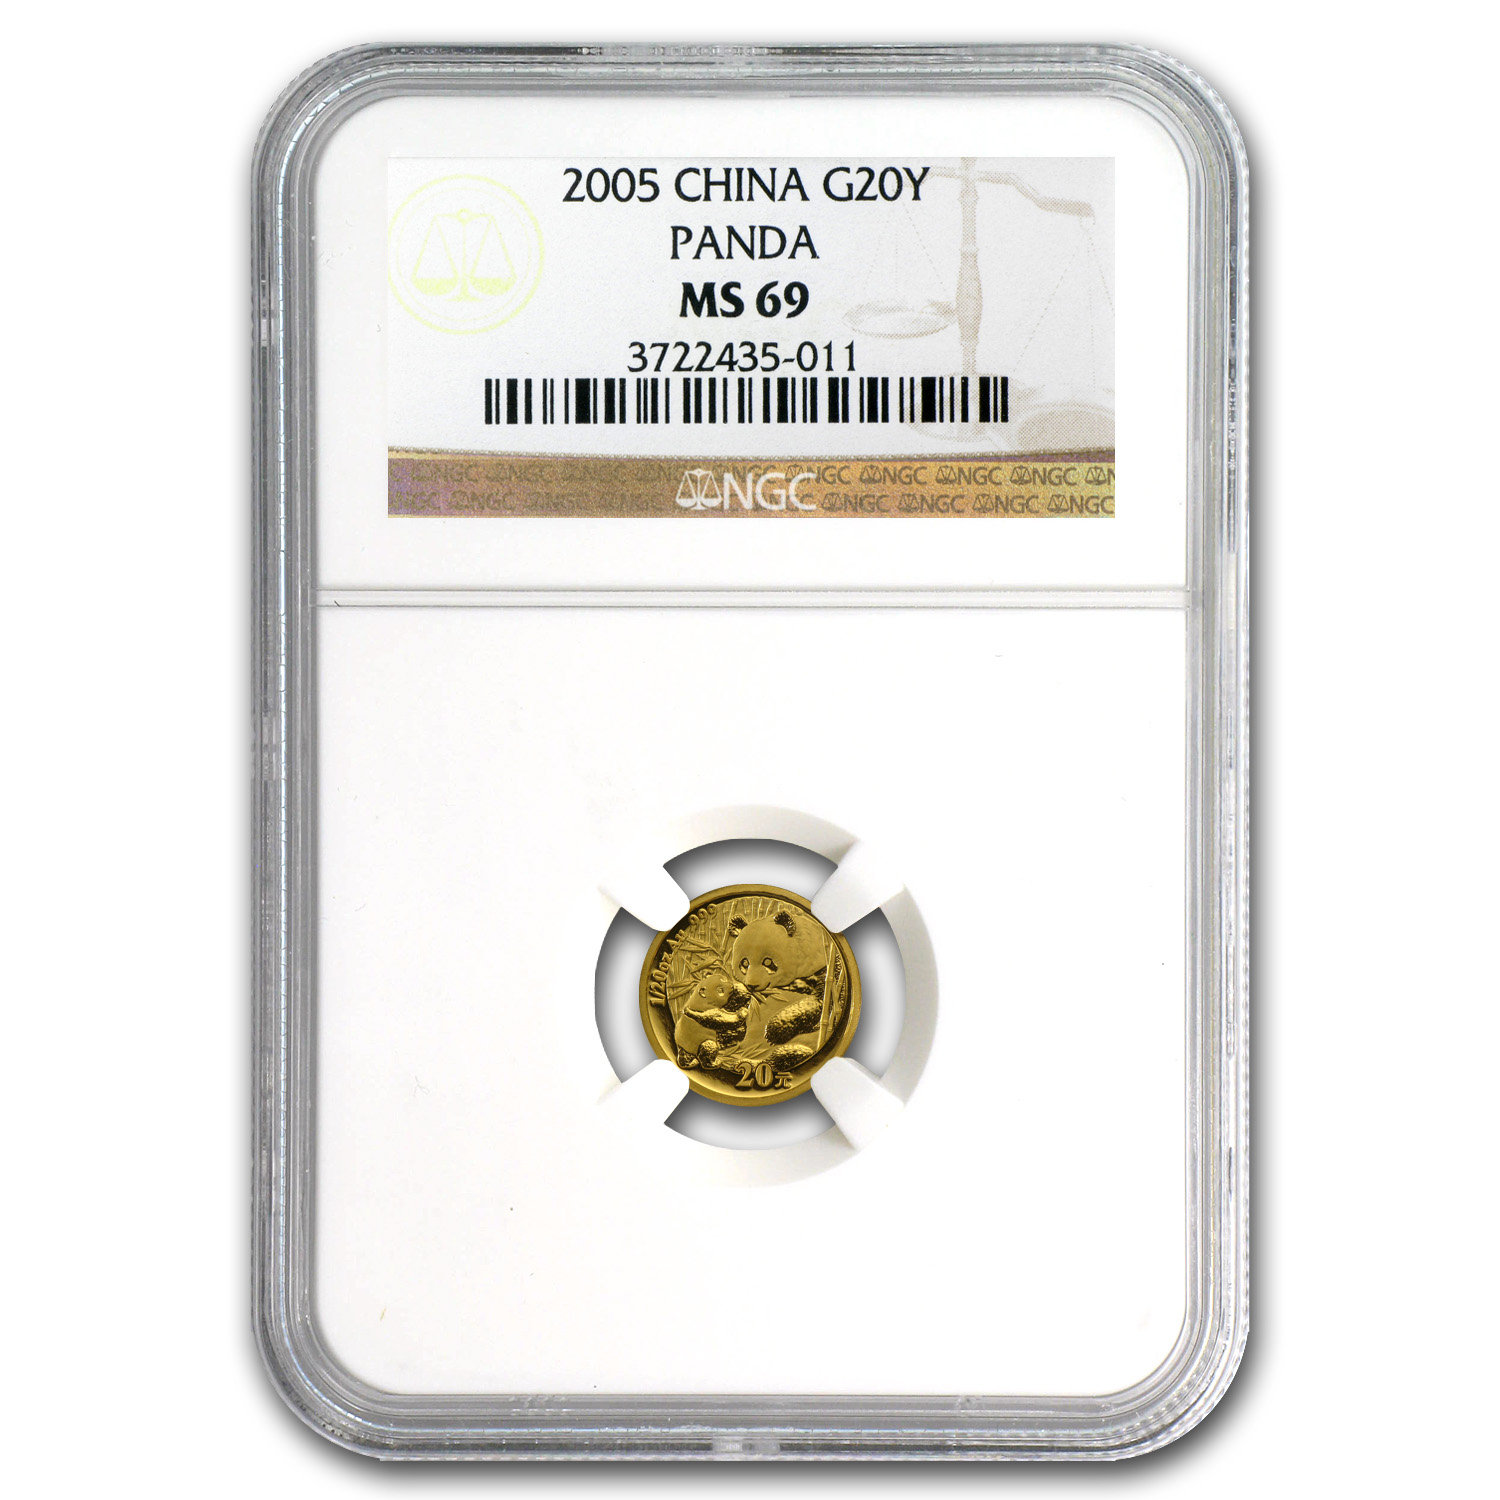 2005 1/20 oz Gold Chinese Panda MS-69 NGC